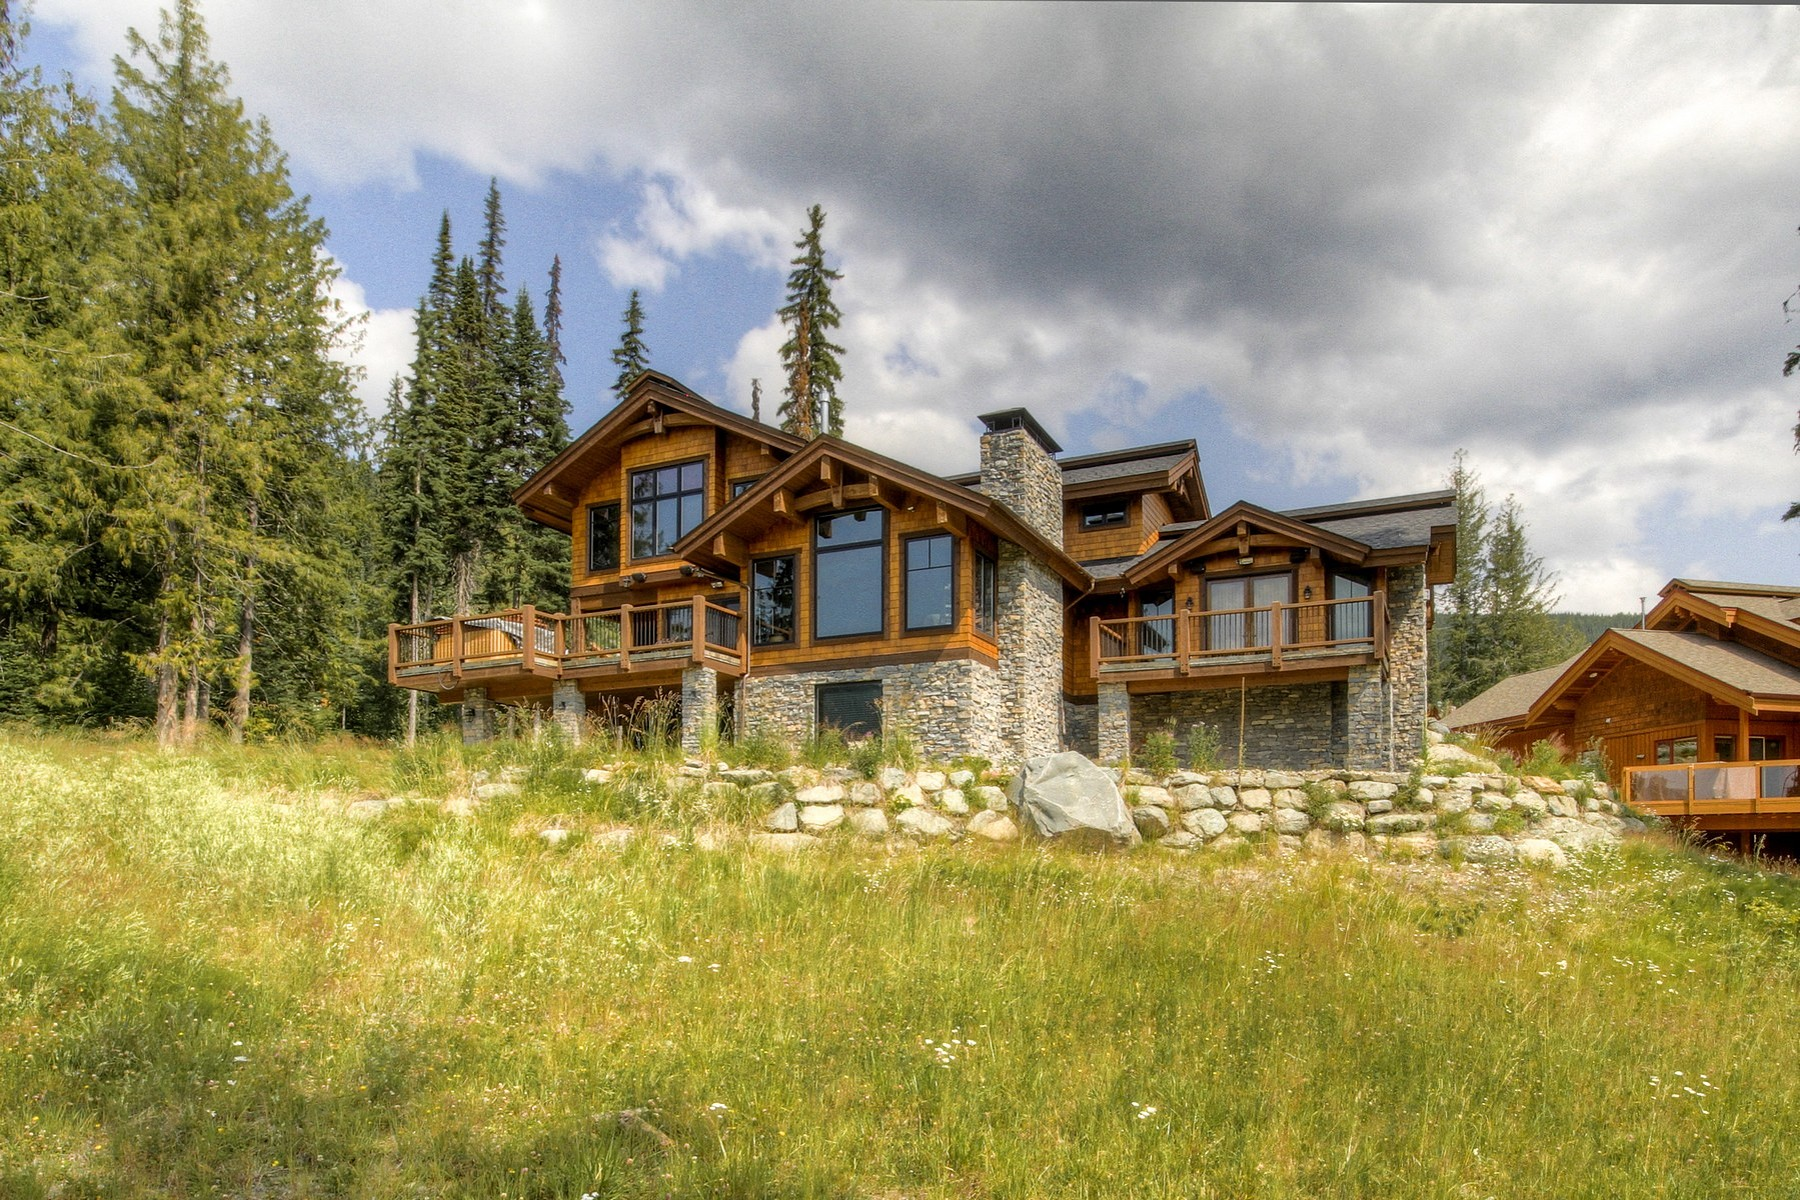 Single Family Home for Sale at Premium Slope Side Mountain Chalet 4121 Sundance Drive Sun Peaks, British Columbia, V0E 5N0 Canada